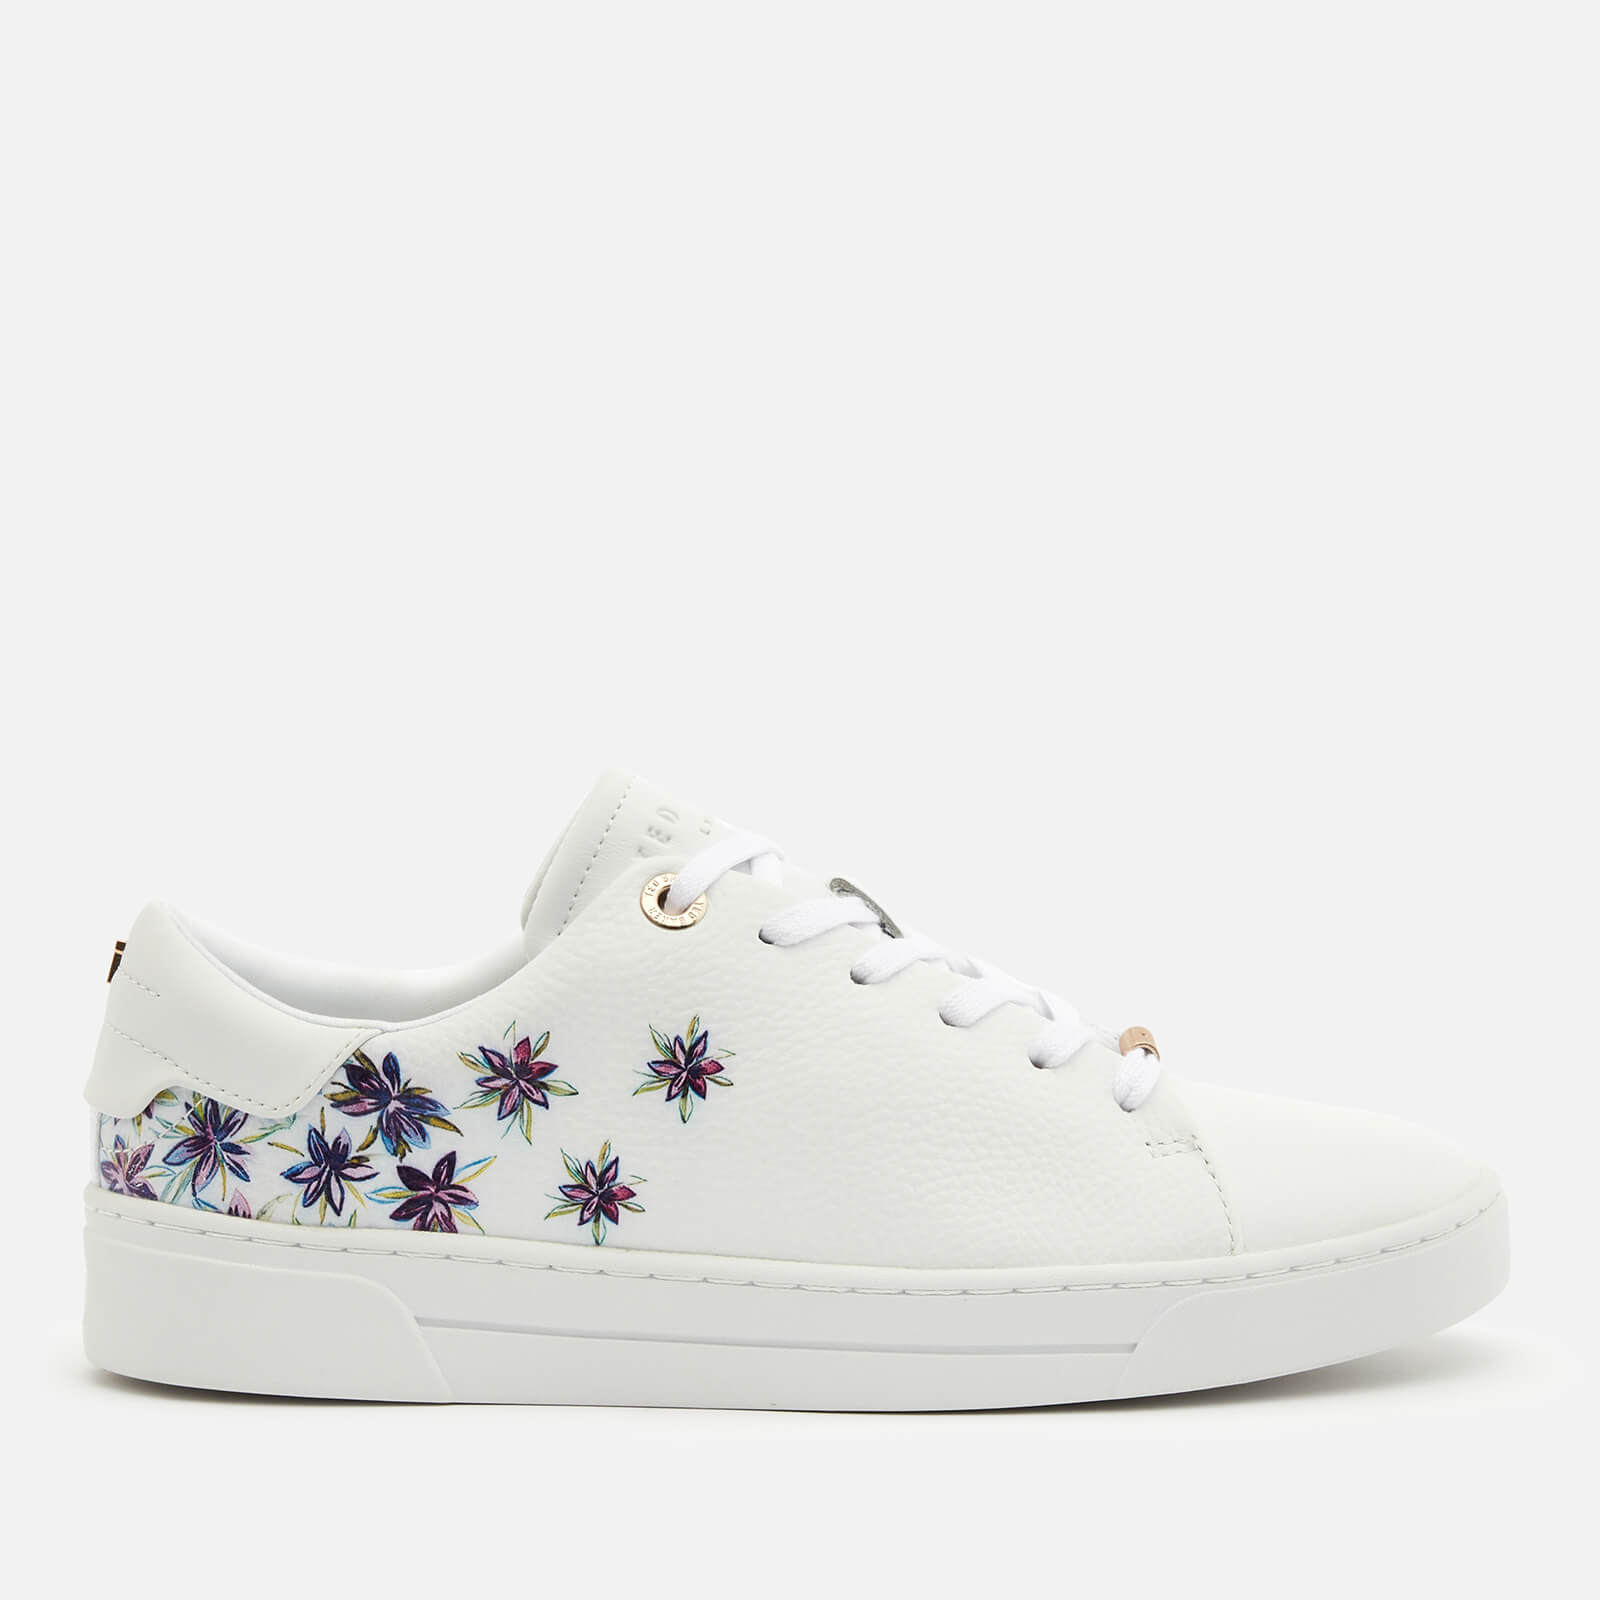 Ted Baker Women's Keilie Leather Cupsole Trainers - White - UK 8